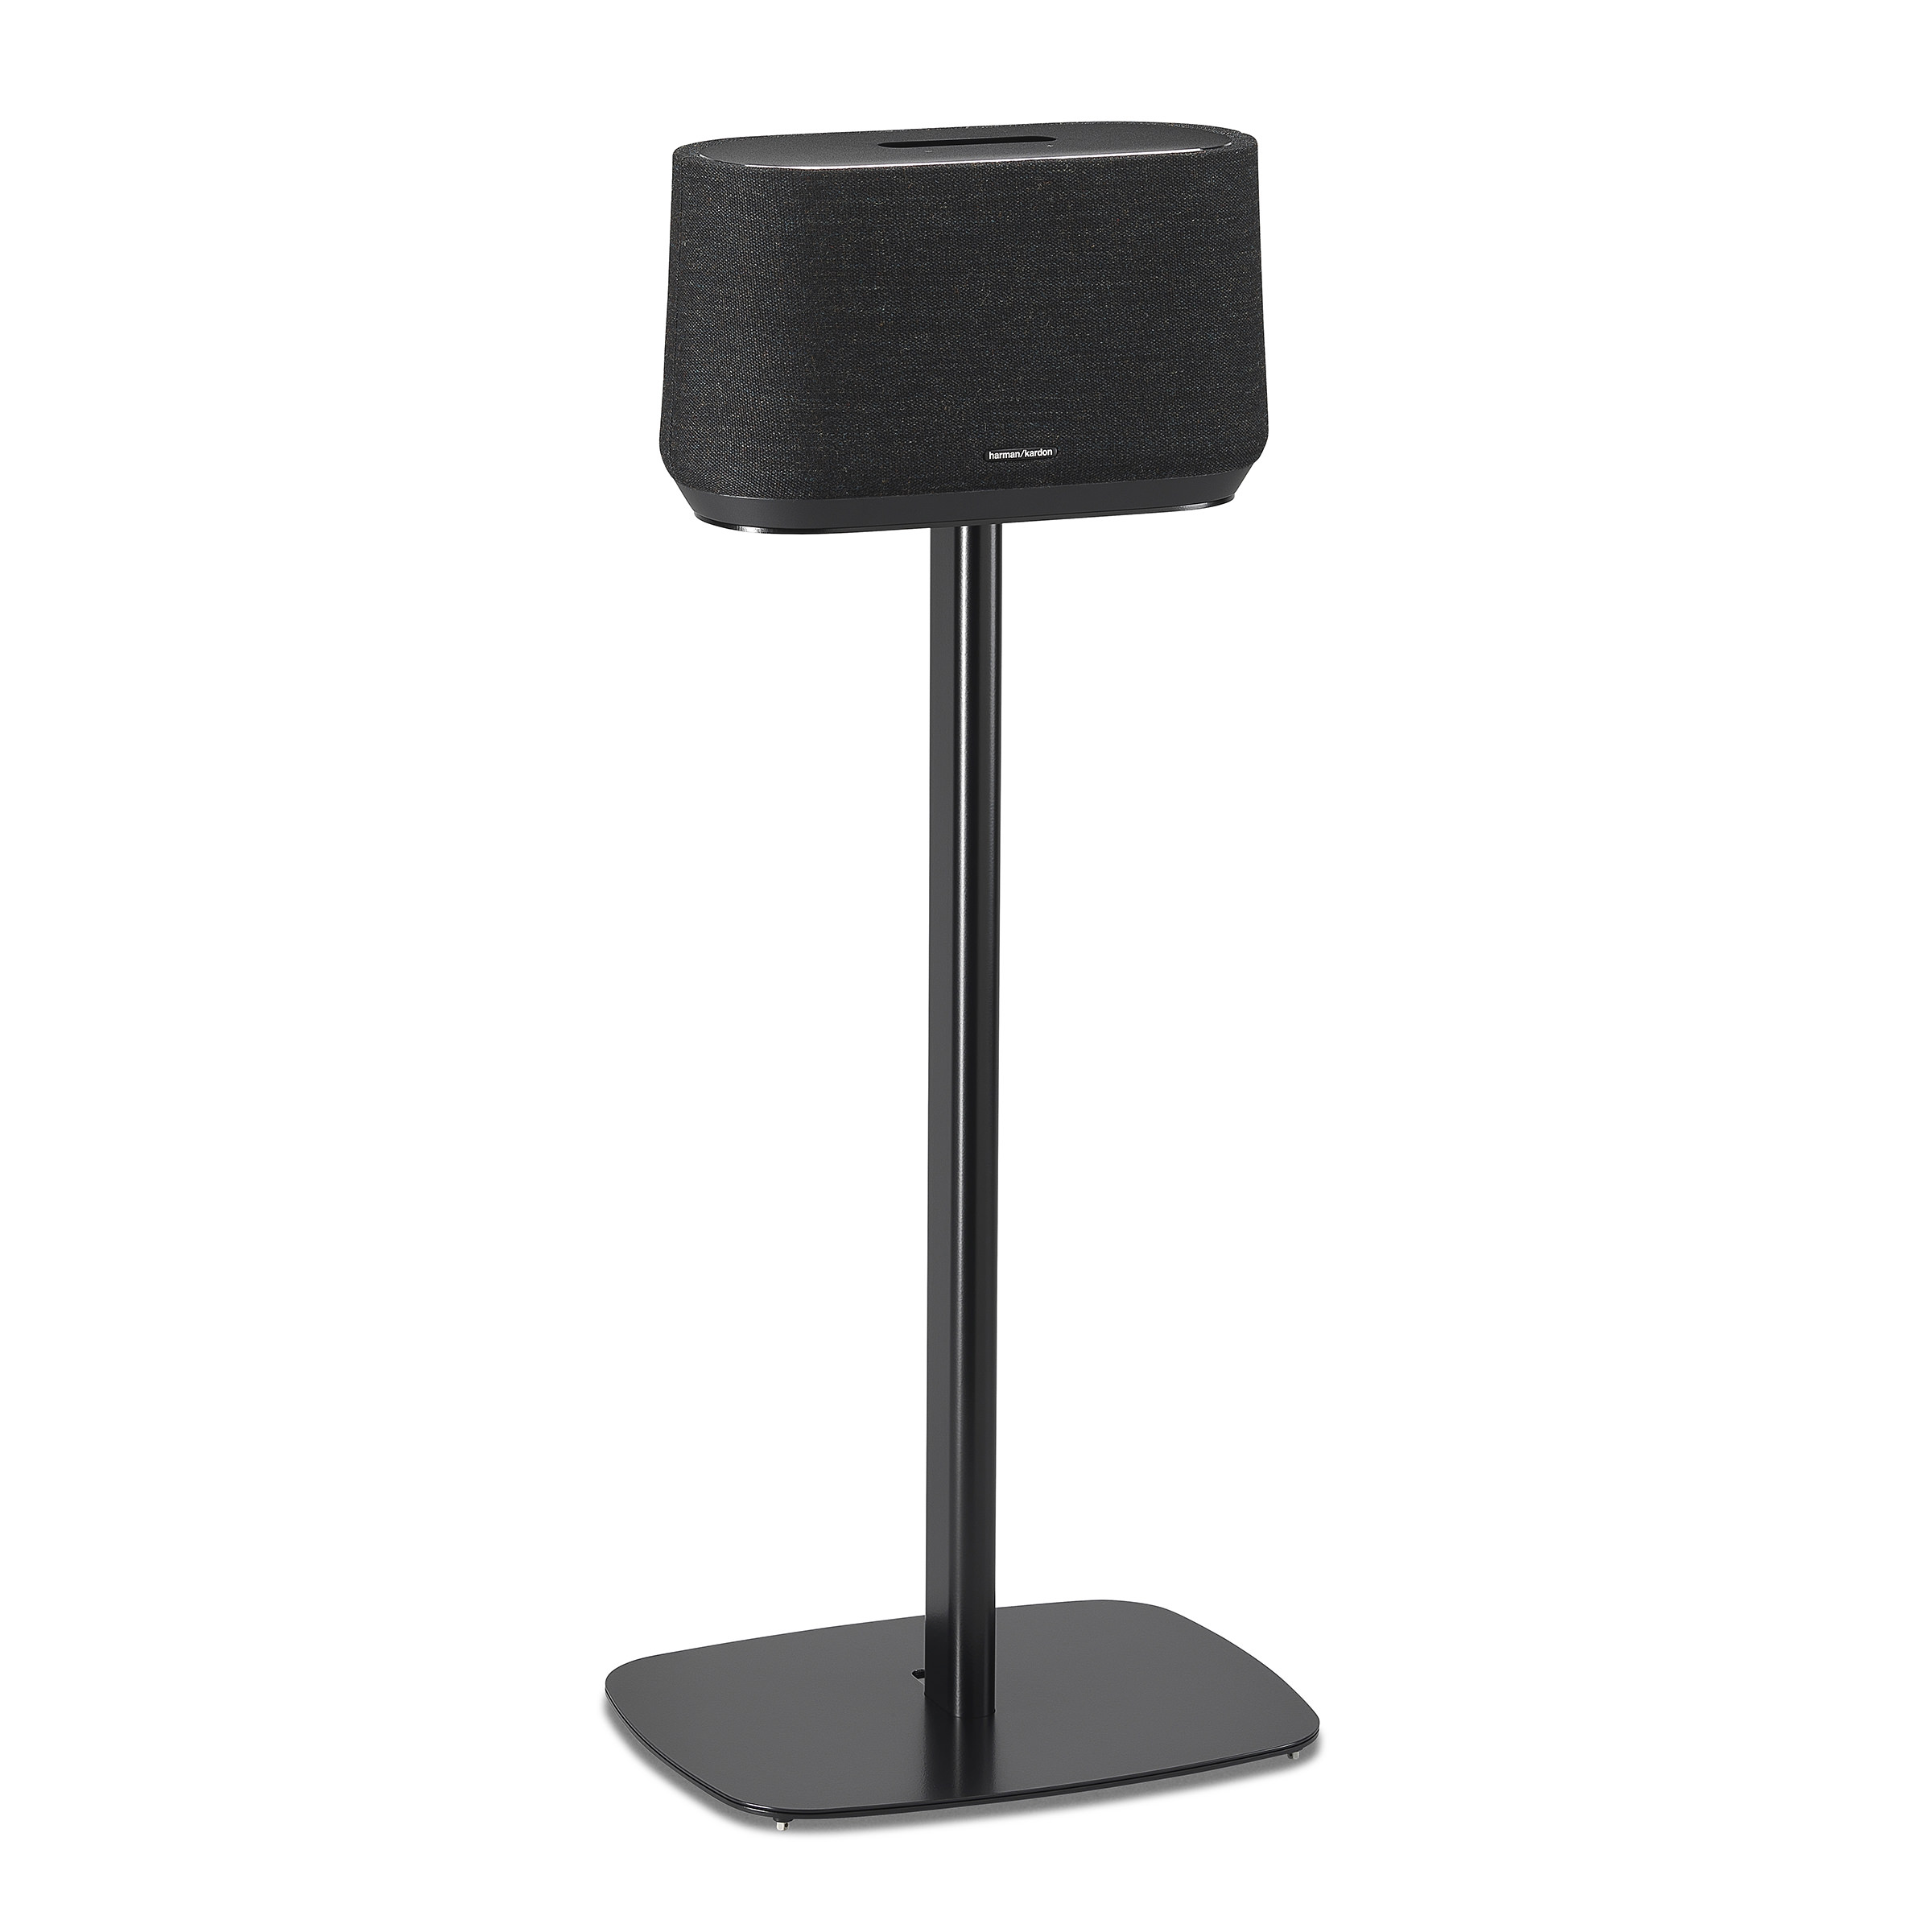 Harman Kardon Citation 300 standaard zwart 5